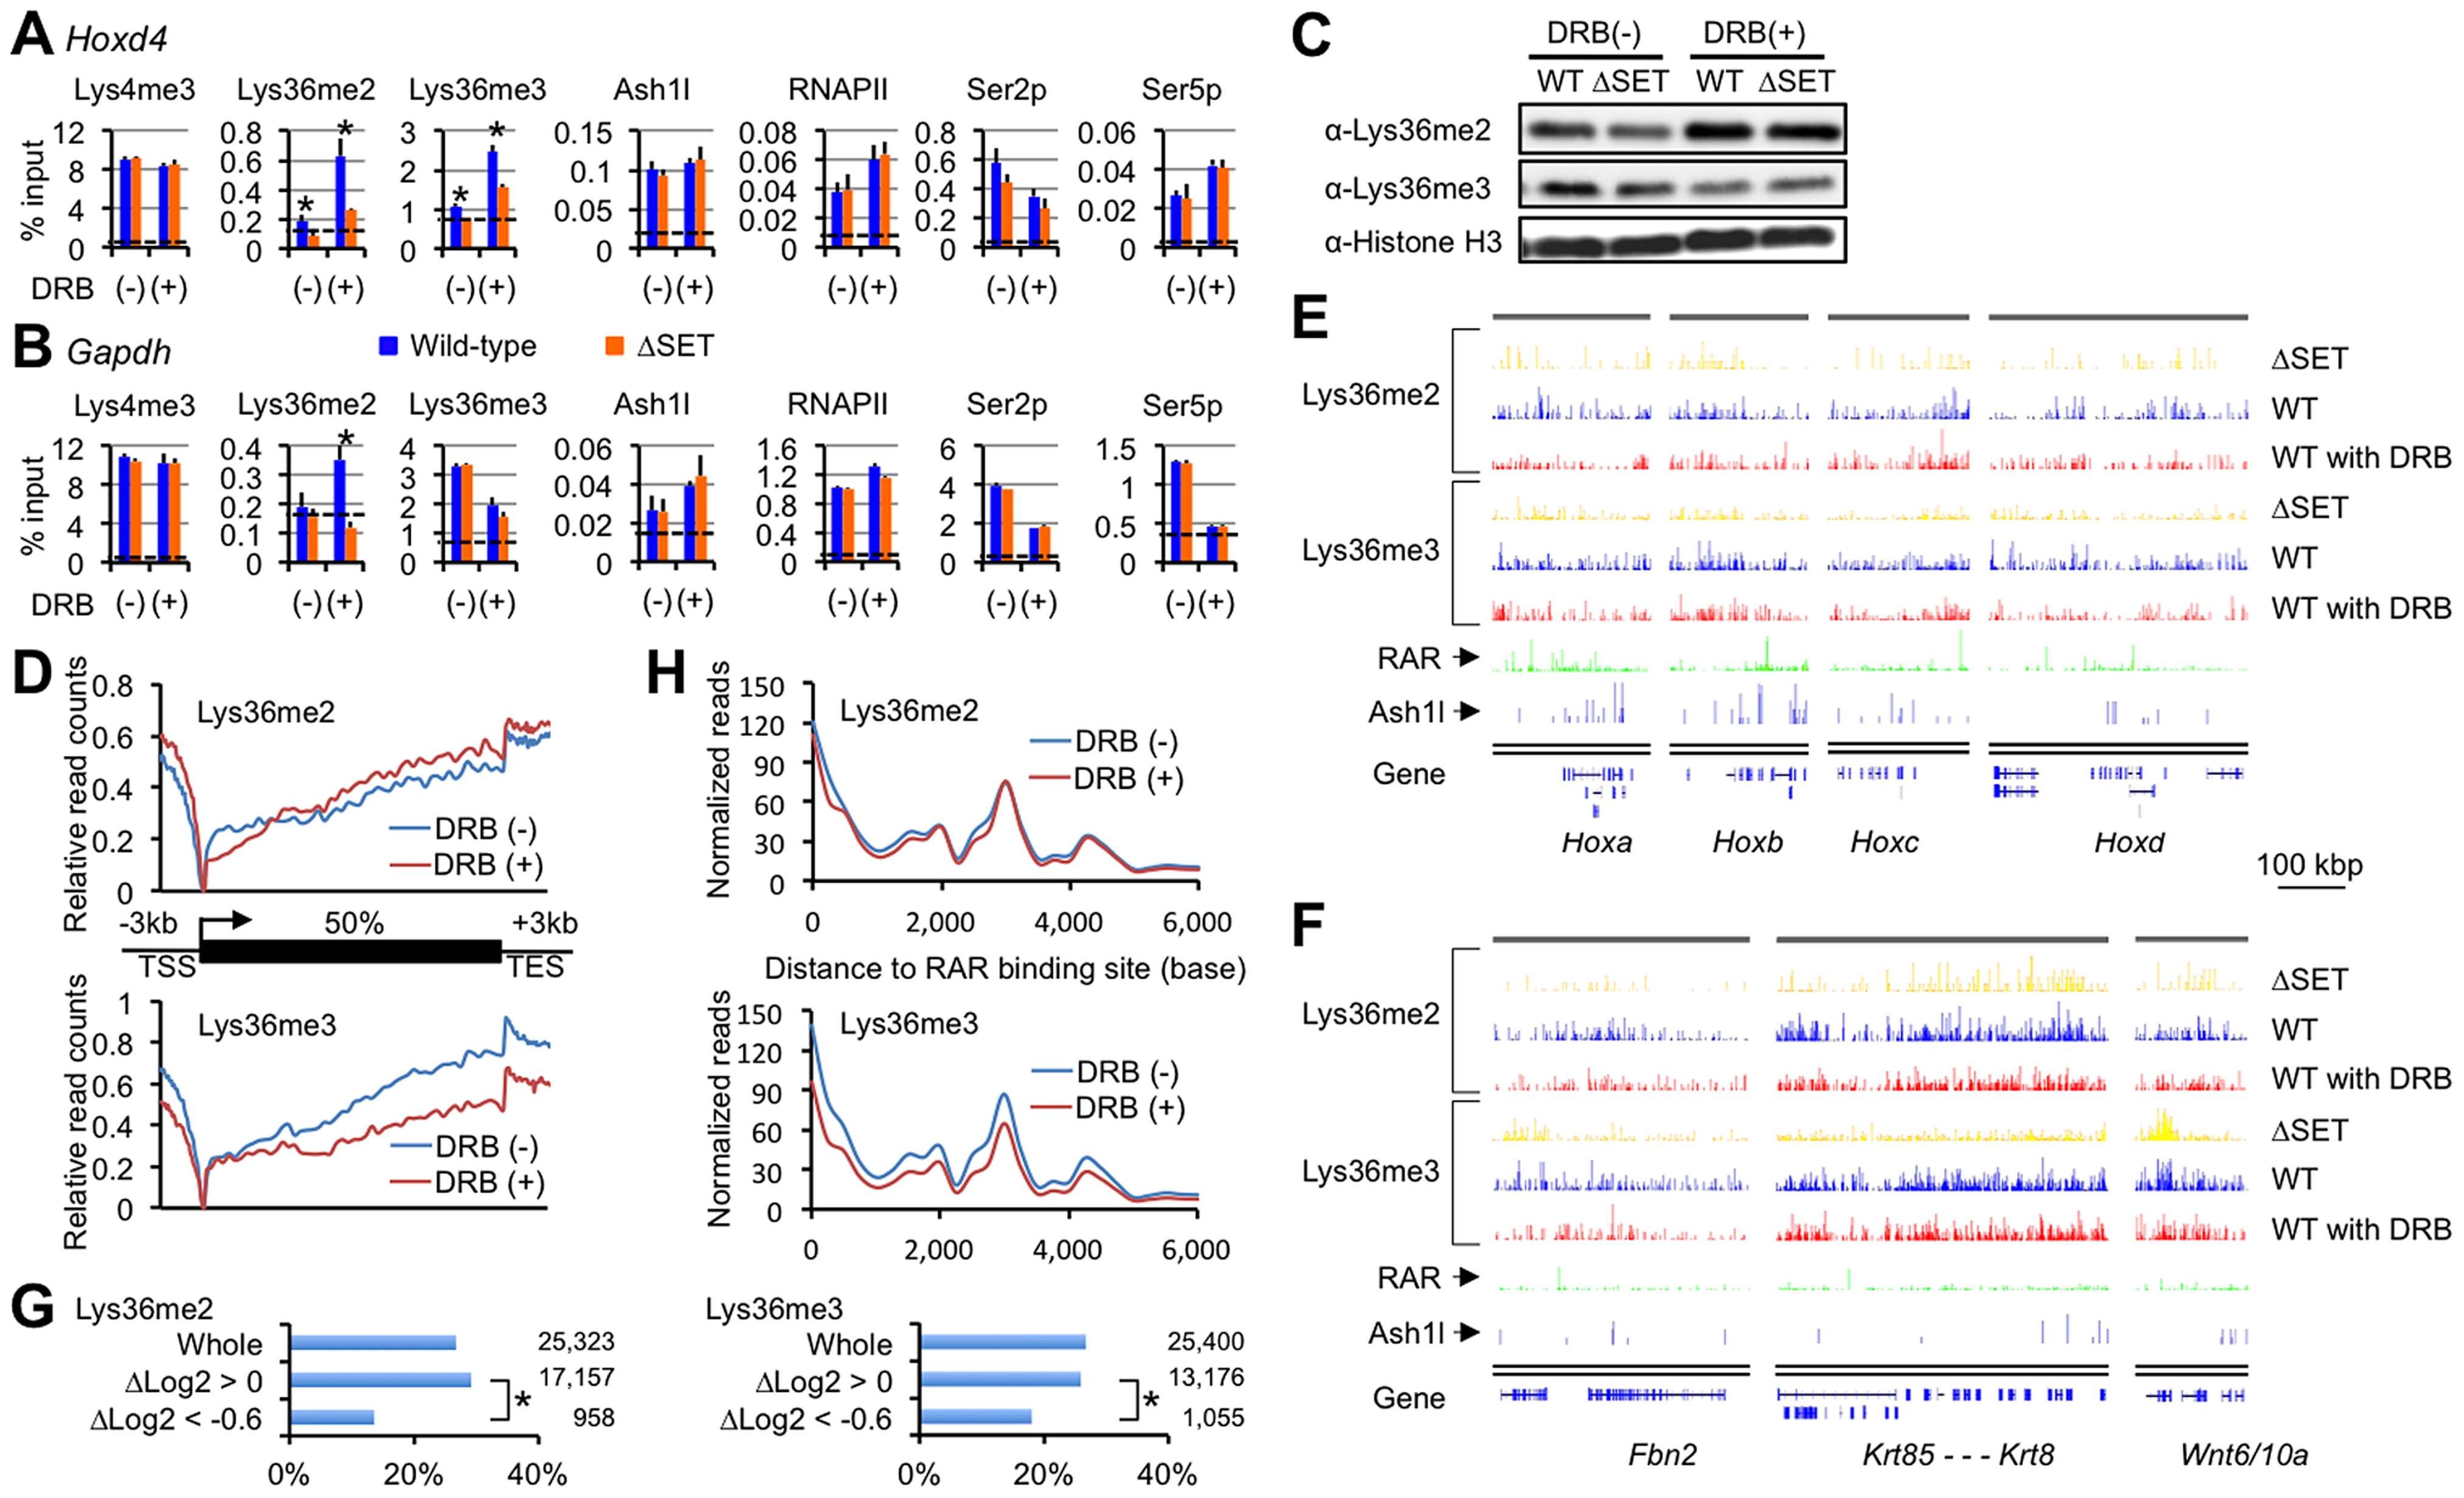 Lys36me2 occurs independently of the Ser2-phosphorylation of RNAPII, while Lys36me3 occurs in a context-dependent manner.